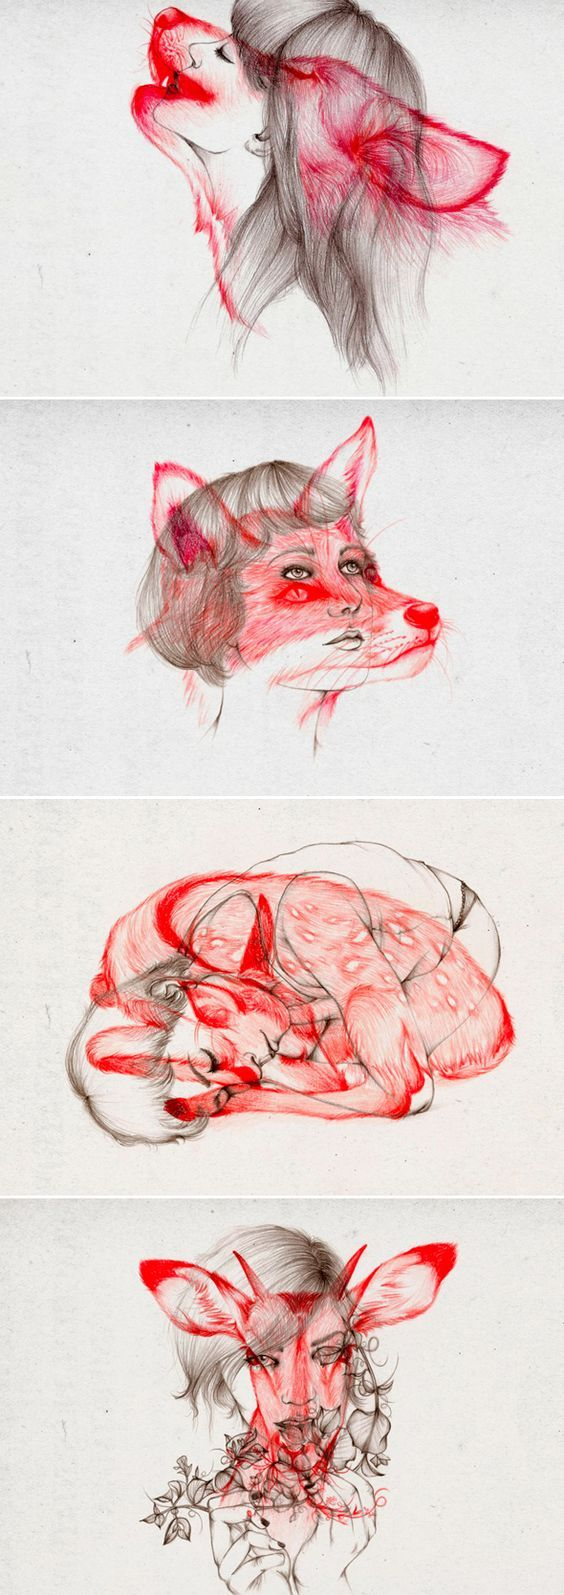 Girl drawings with woodland creatures overlaid Illustrations-par-Peony-Yip-2: